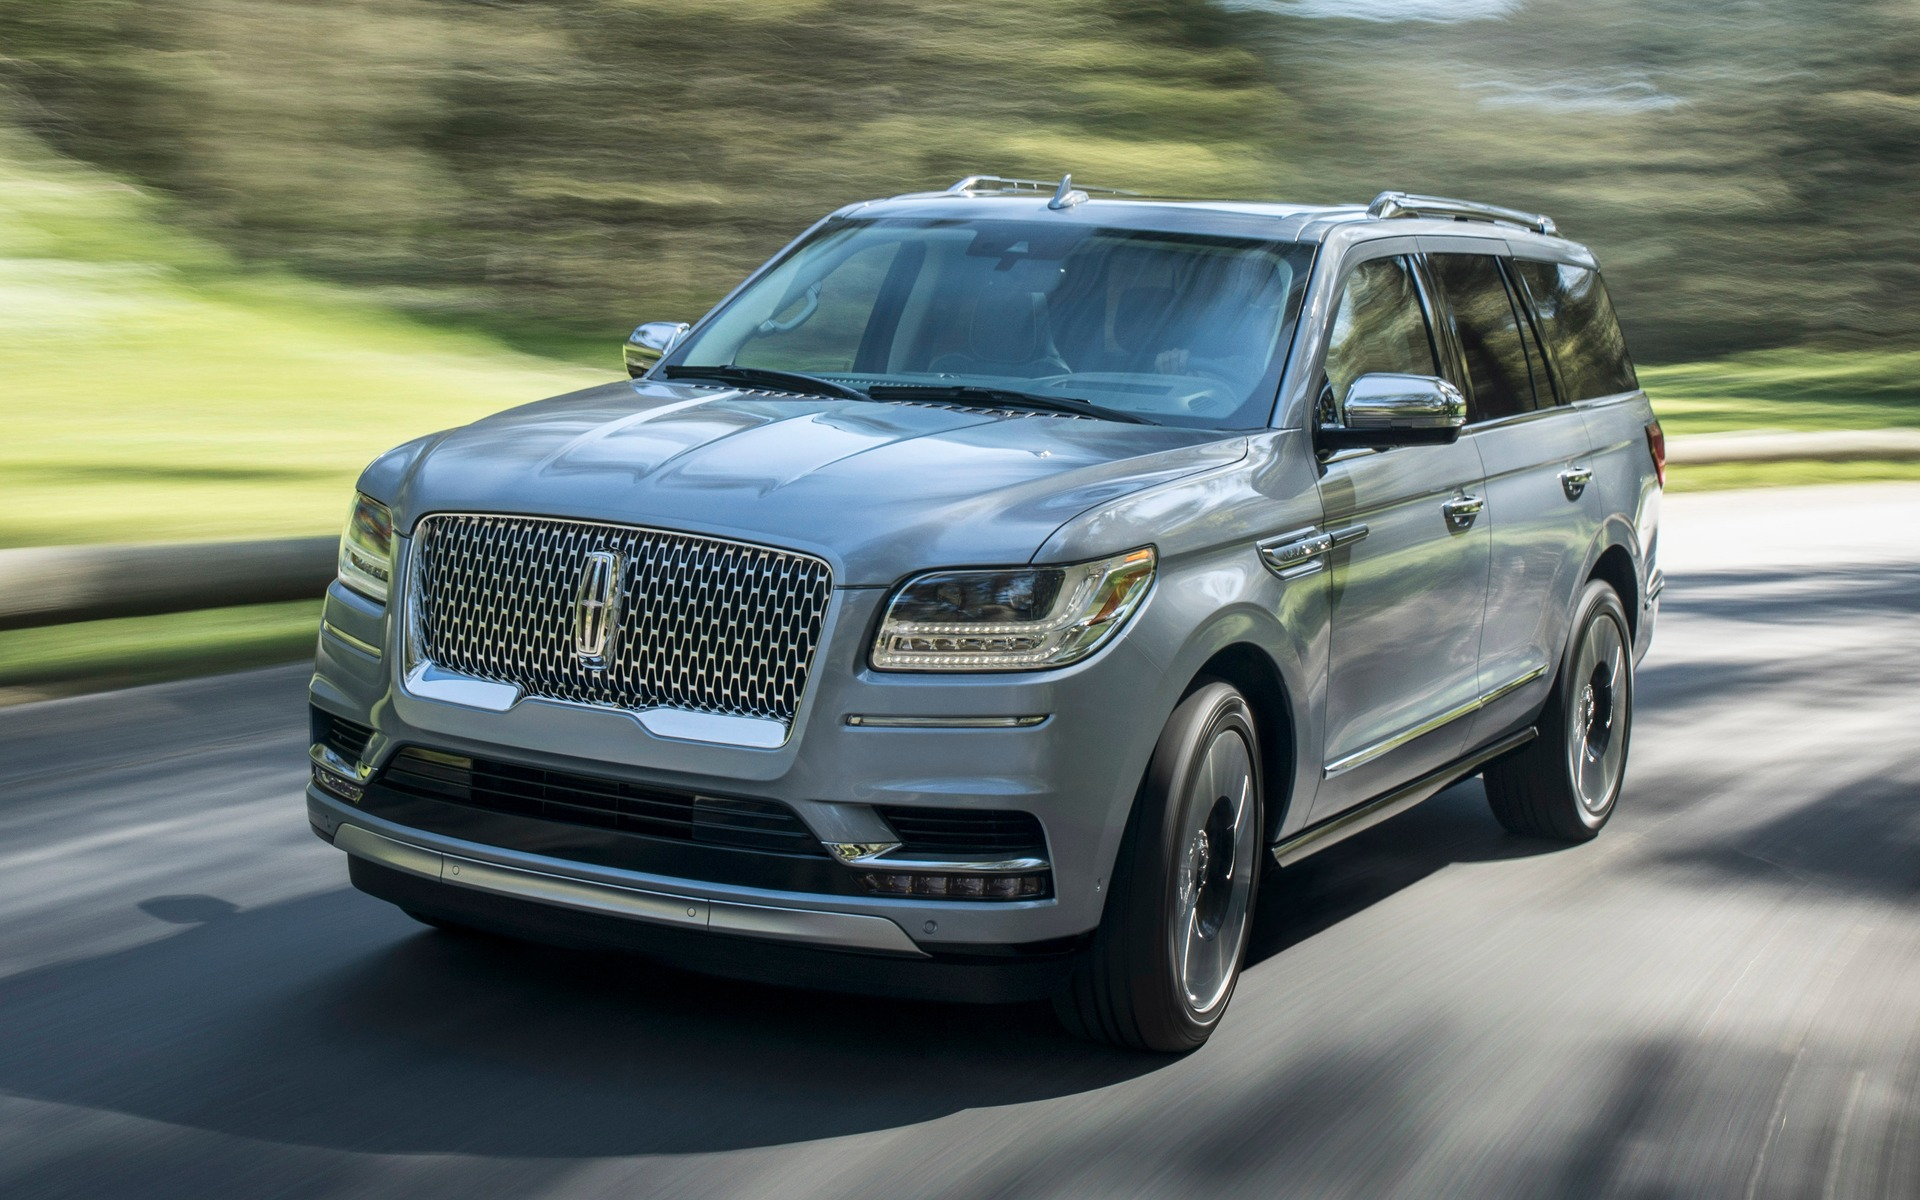 Best full-size luxury SUV - The Car Guide